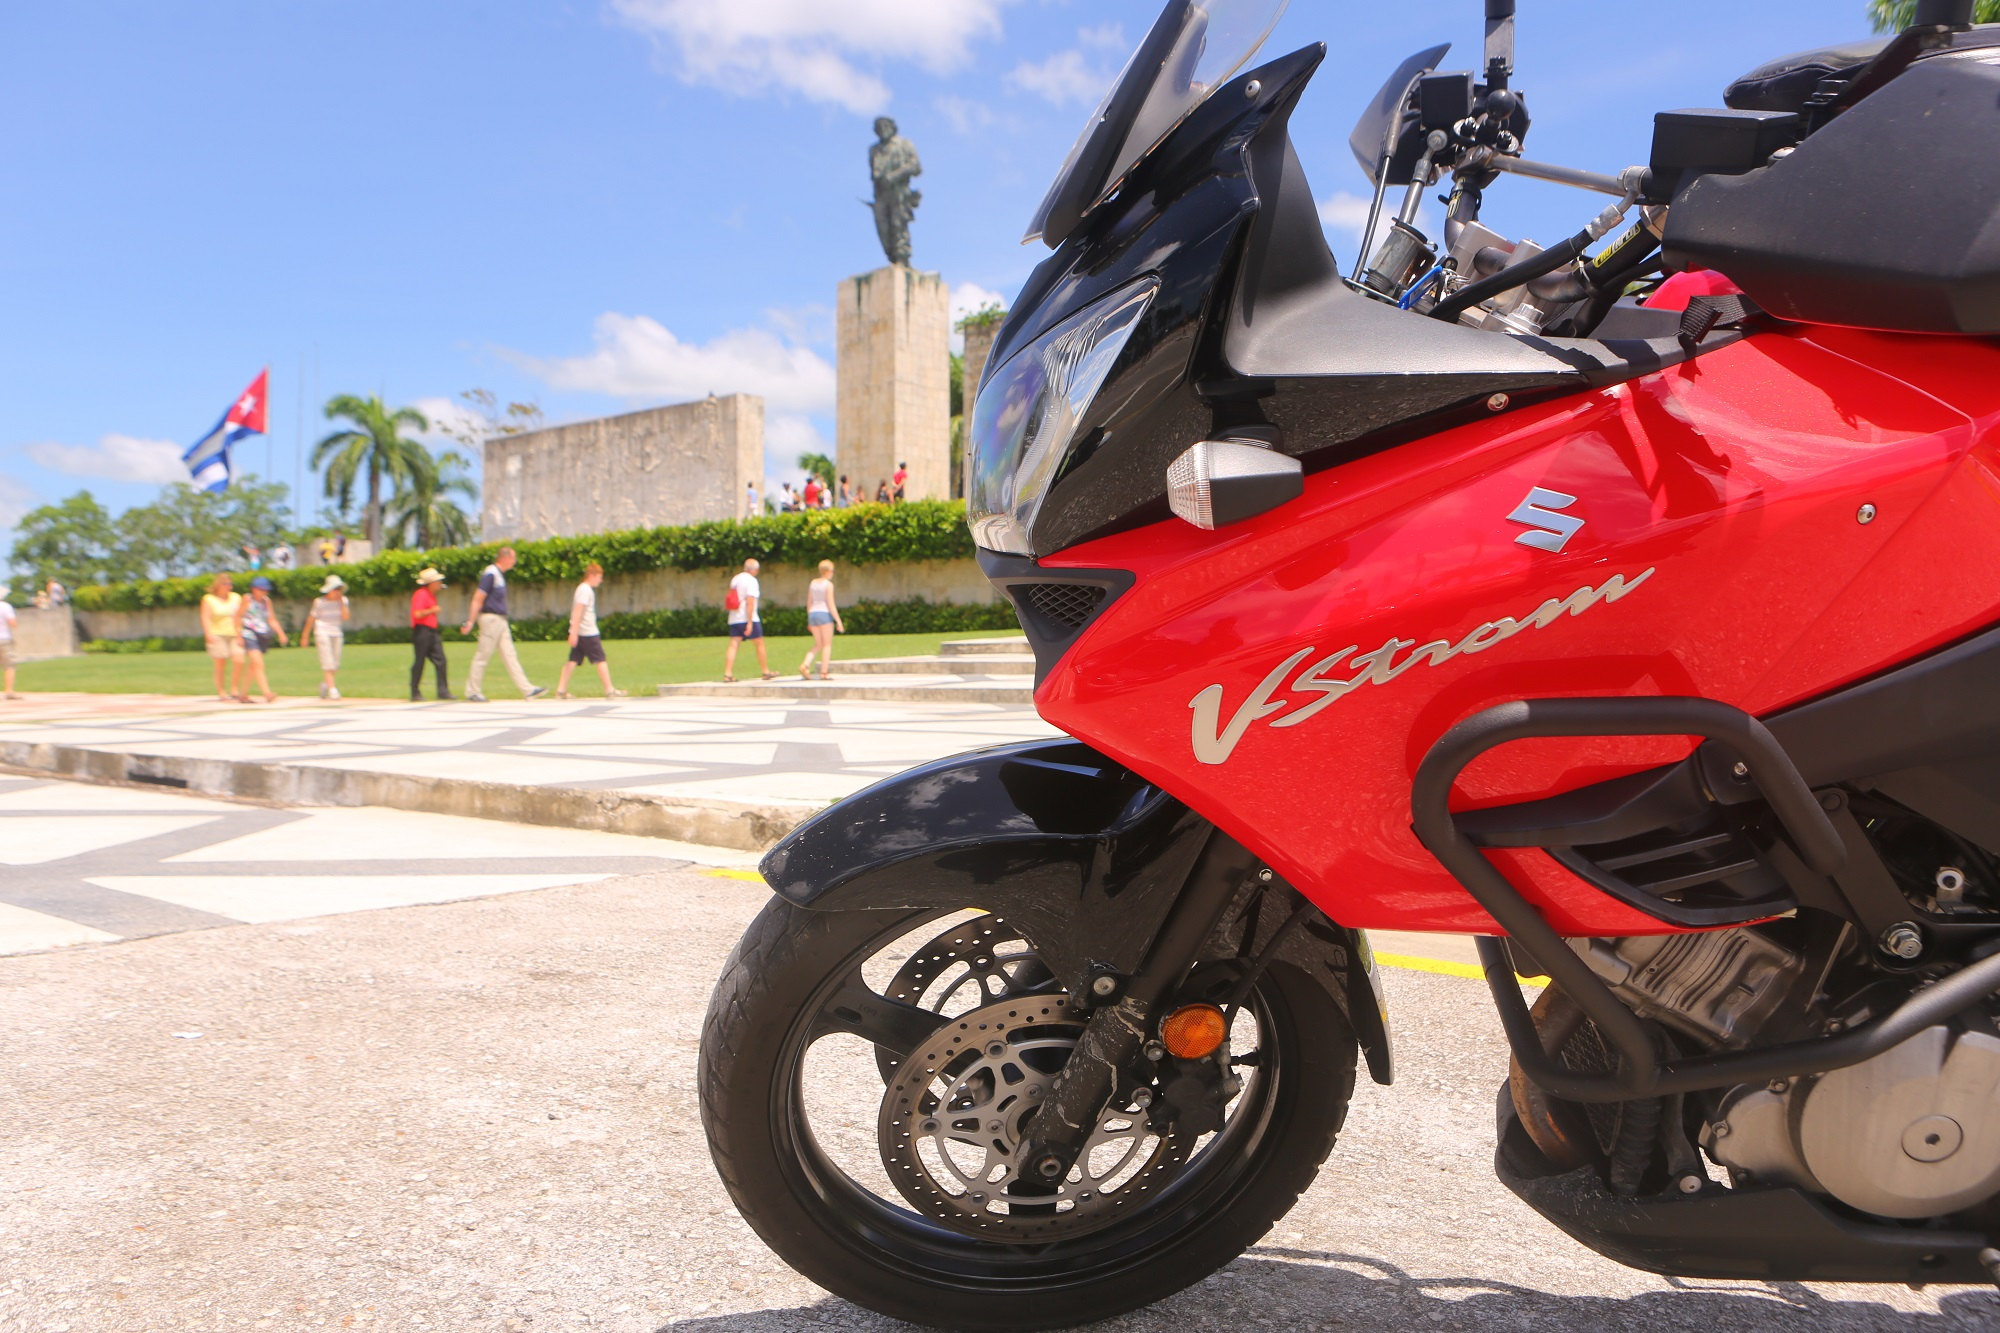 SX2A9875 2000px Suzuki V-Strom 1000 at the Che Guevara mausoleum, Santa Clara, Cuba; copyright Christopher P Baker